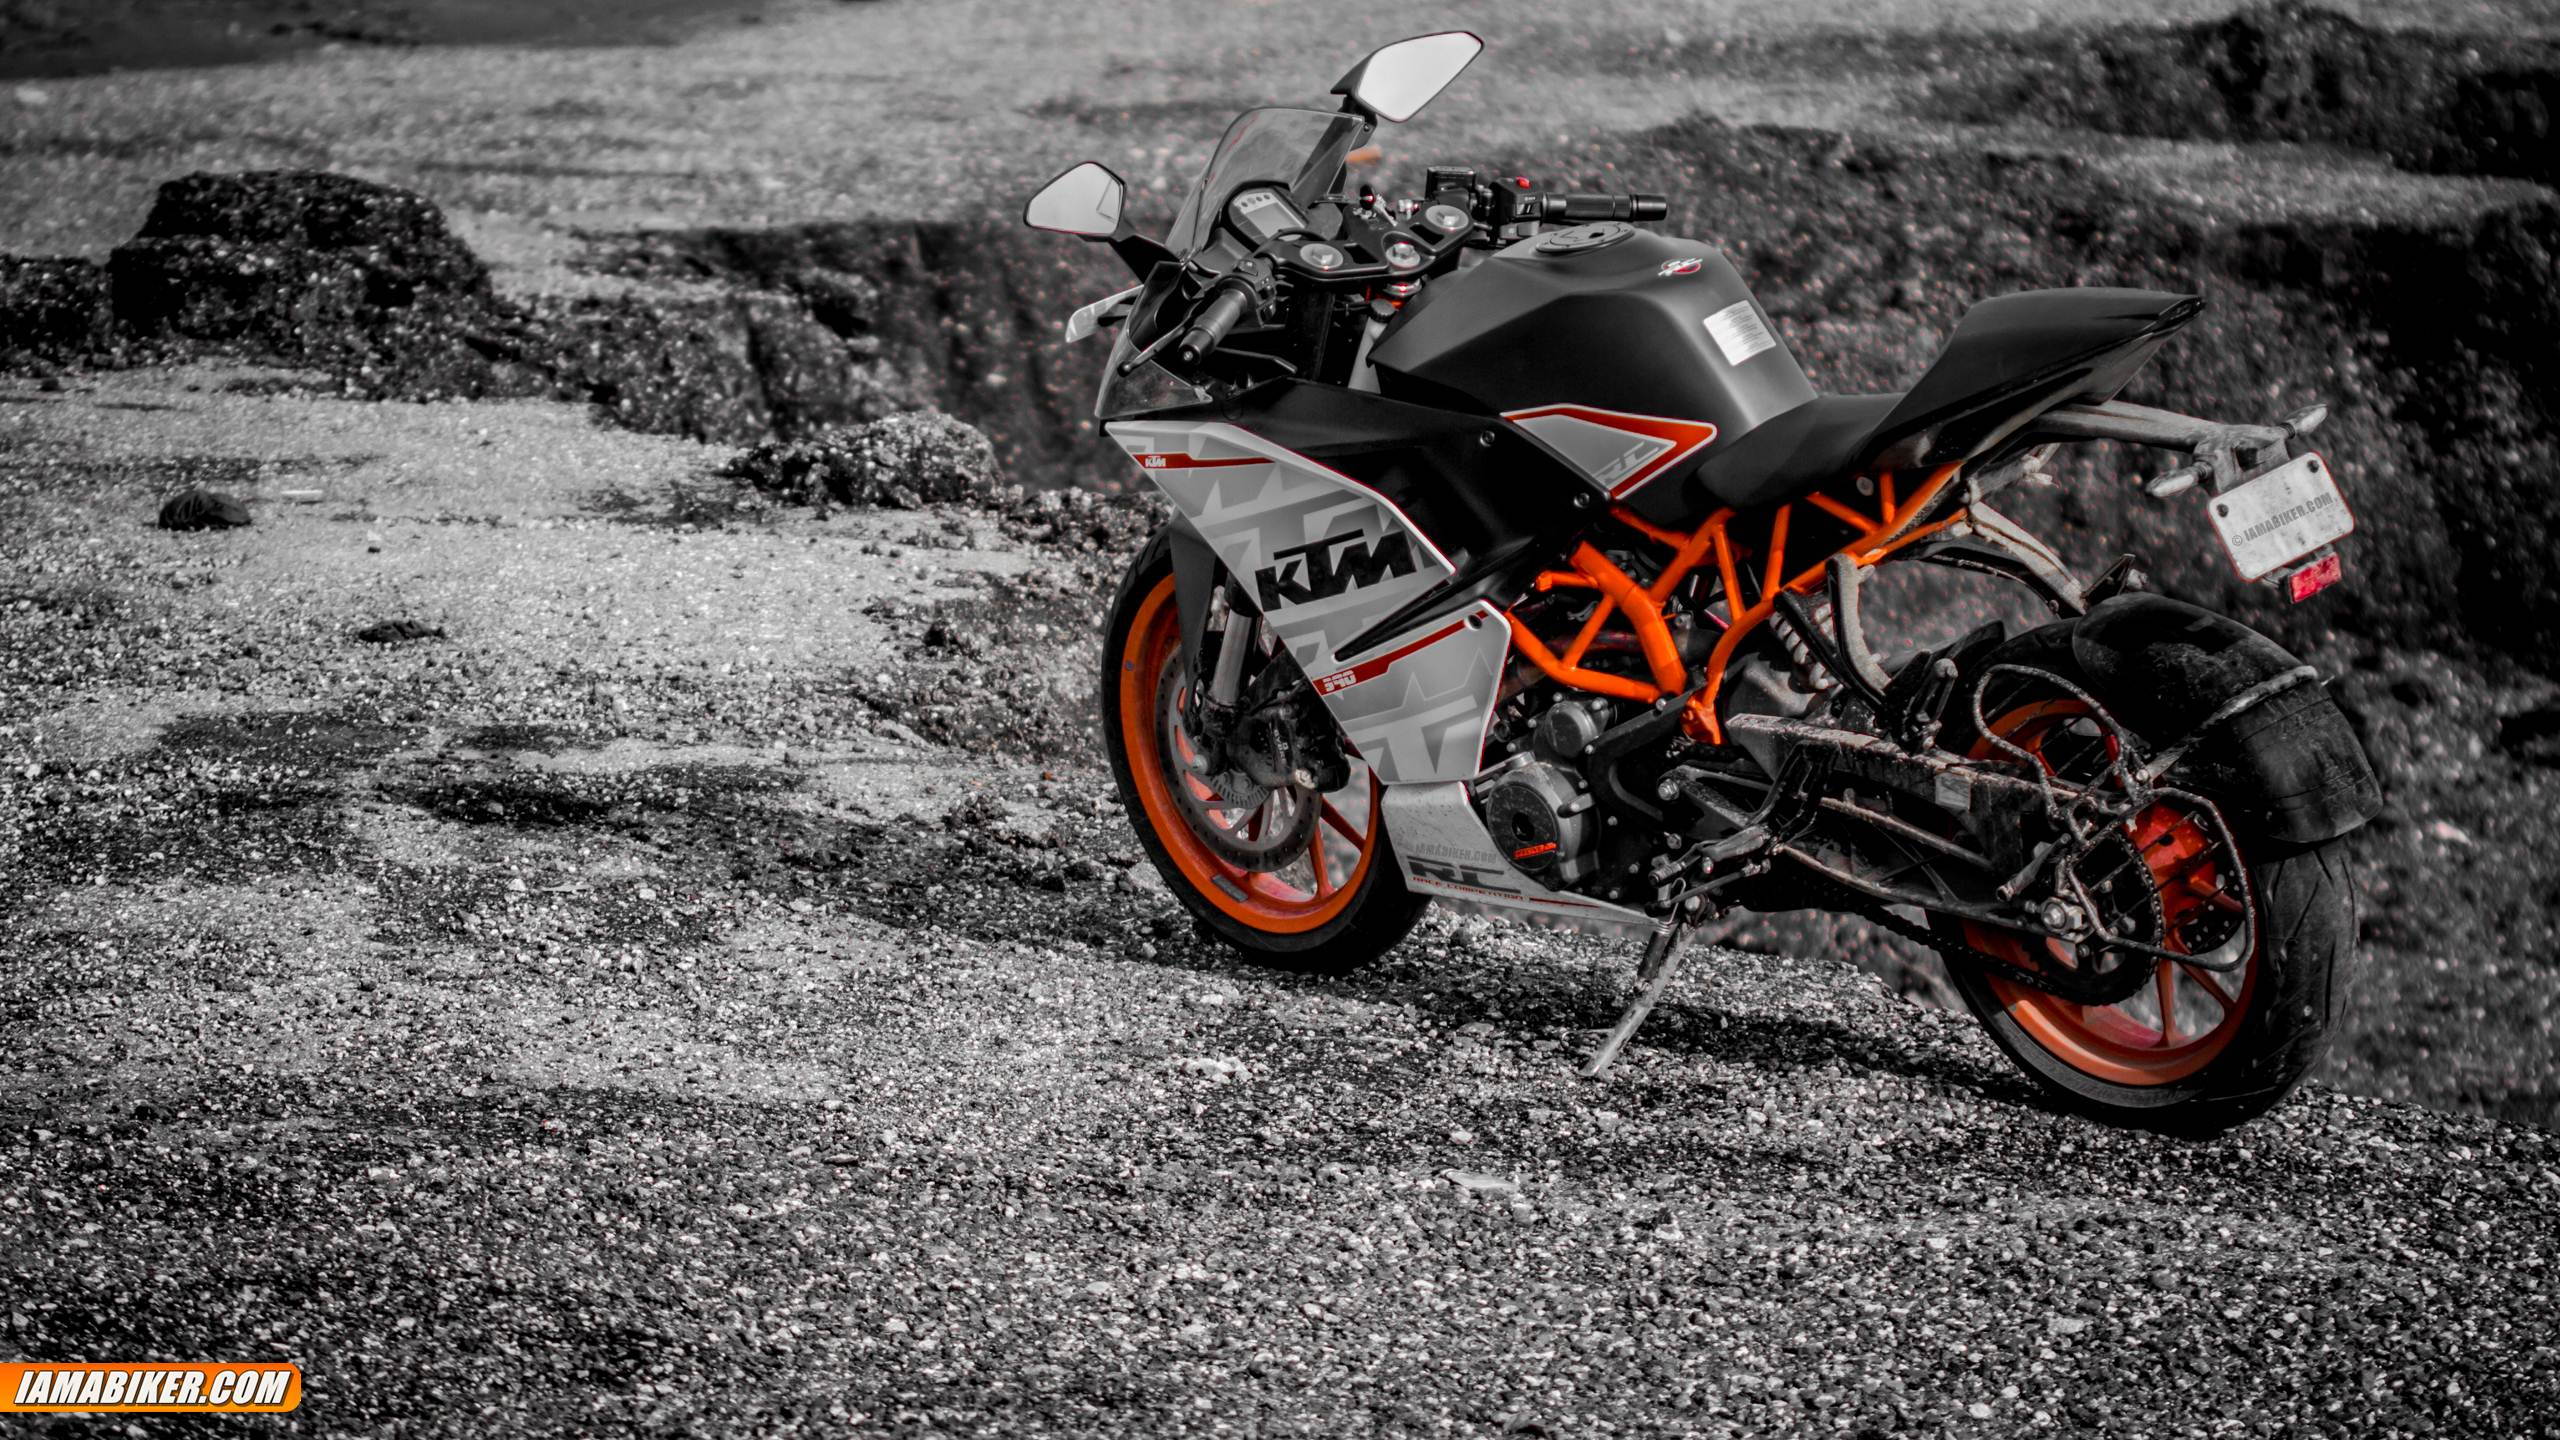 KTM RC 390 wallpapers